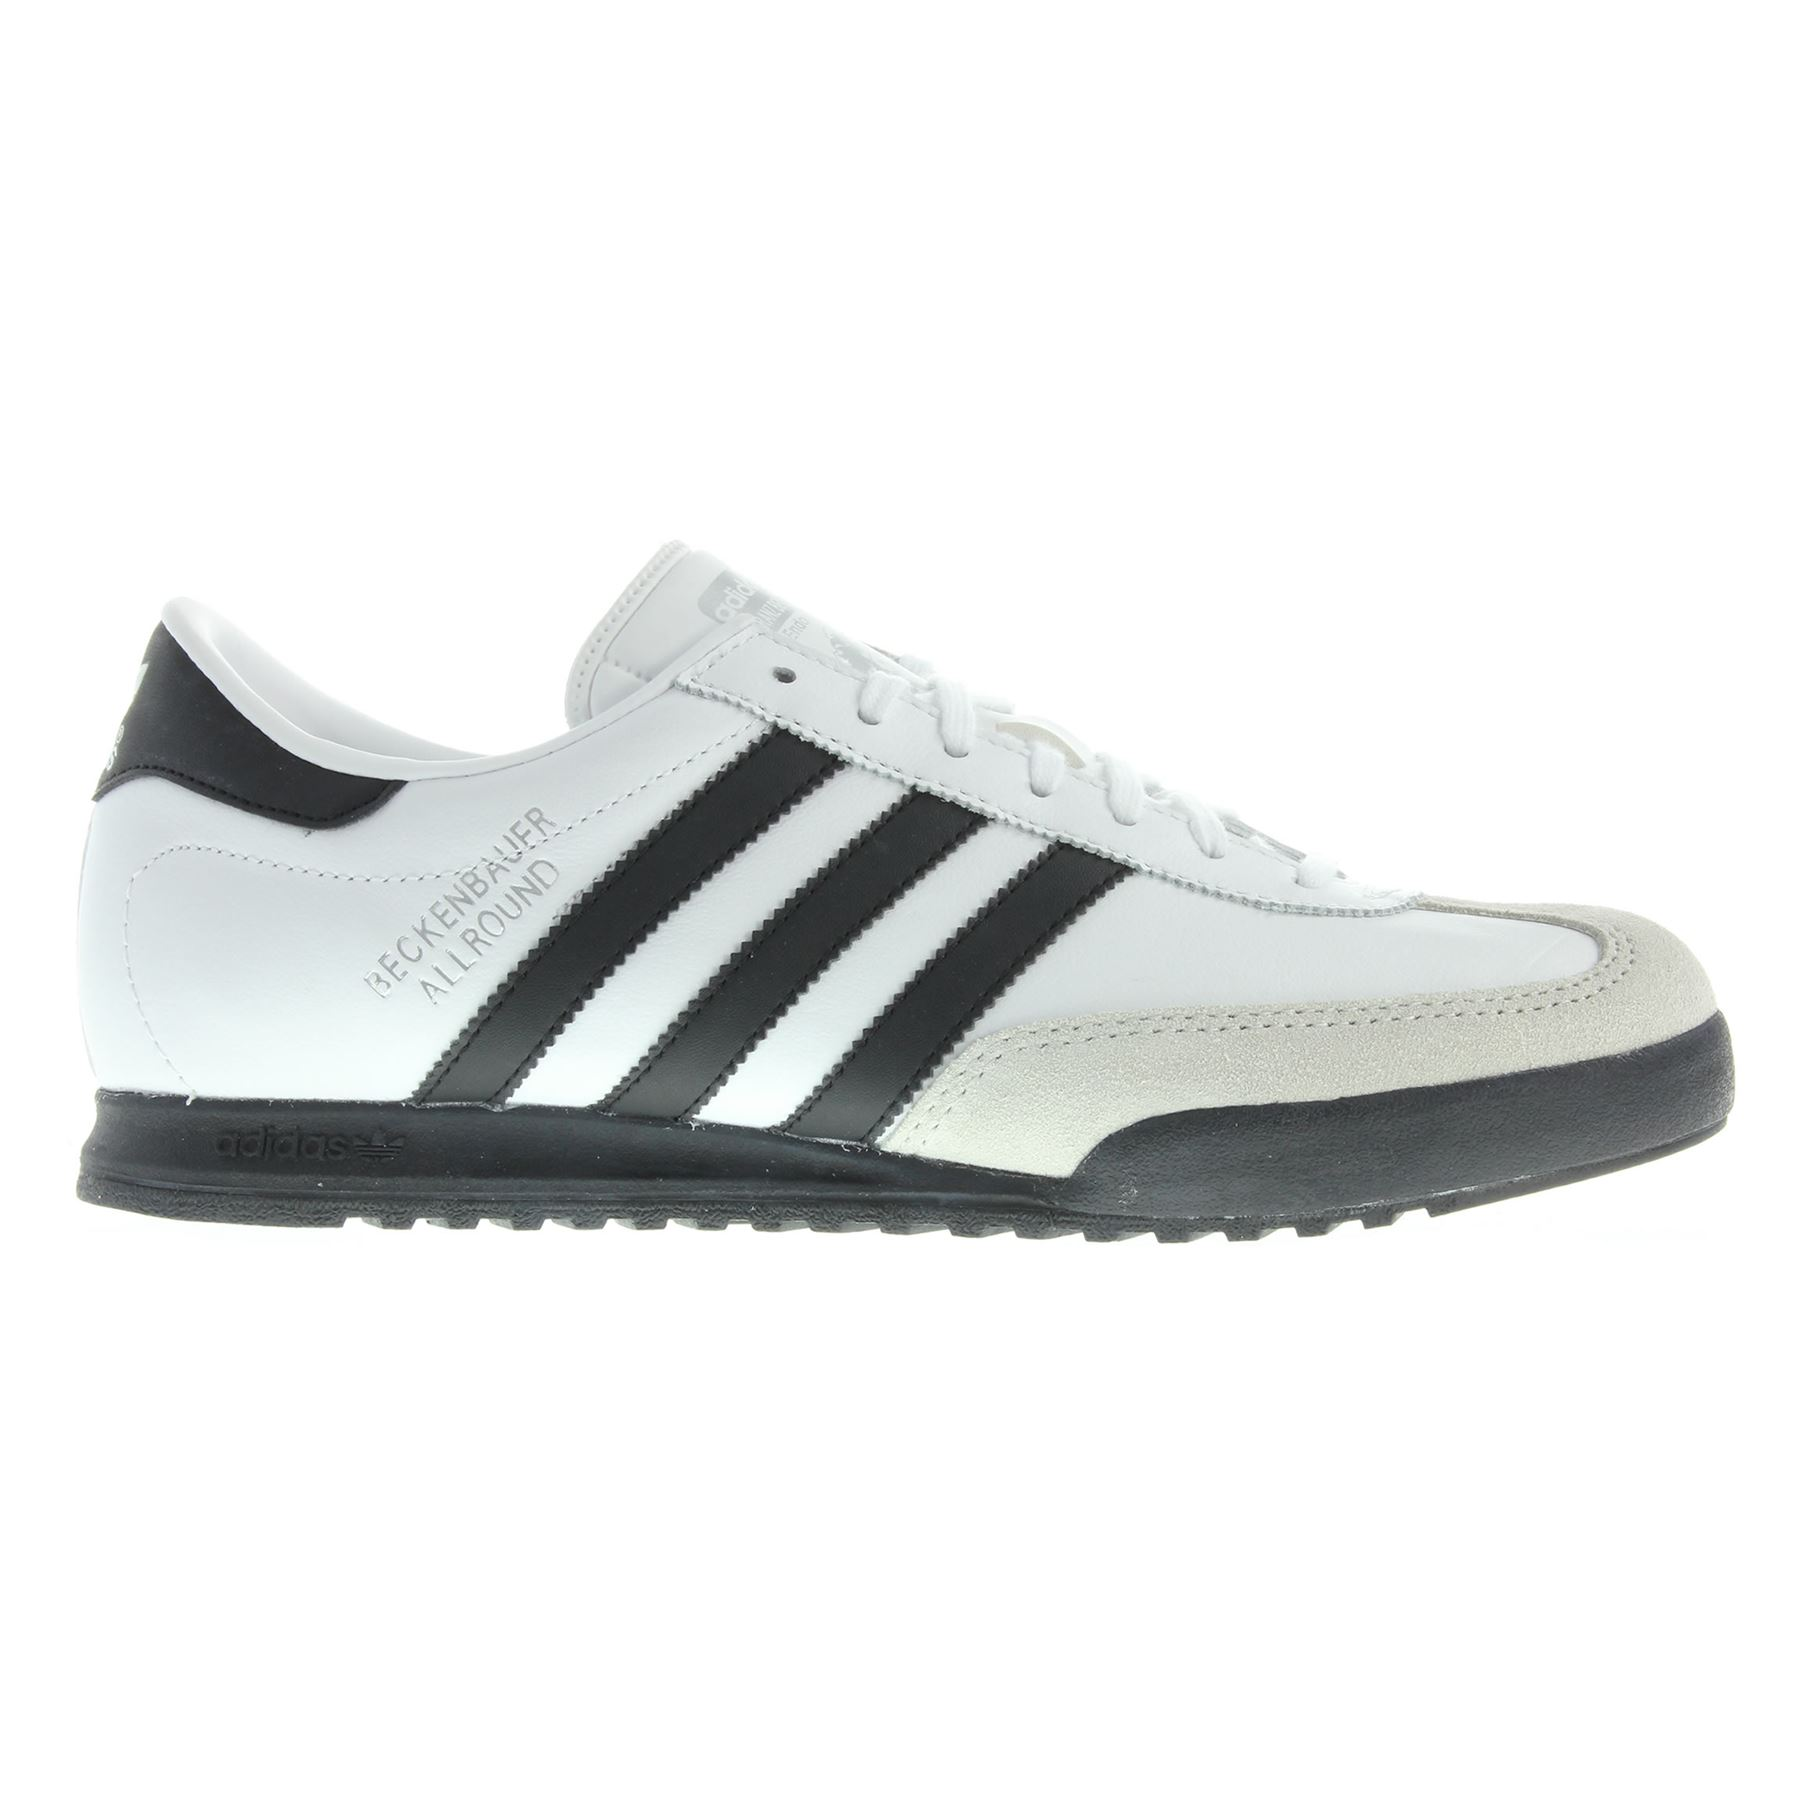 290357144bcf Details about ADIDAS ORIGINALS MEN S TRAINERS BECKENBAUER ALL ROUND BLUE  WHITE BLACK BROWN